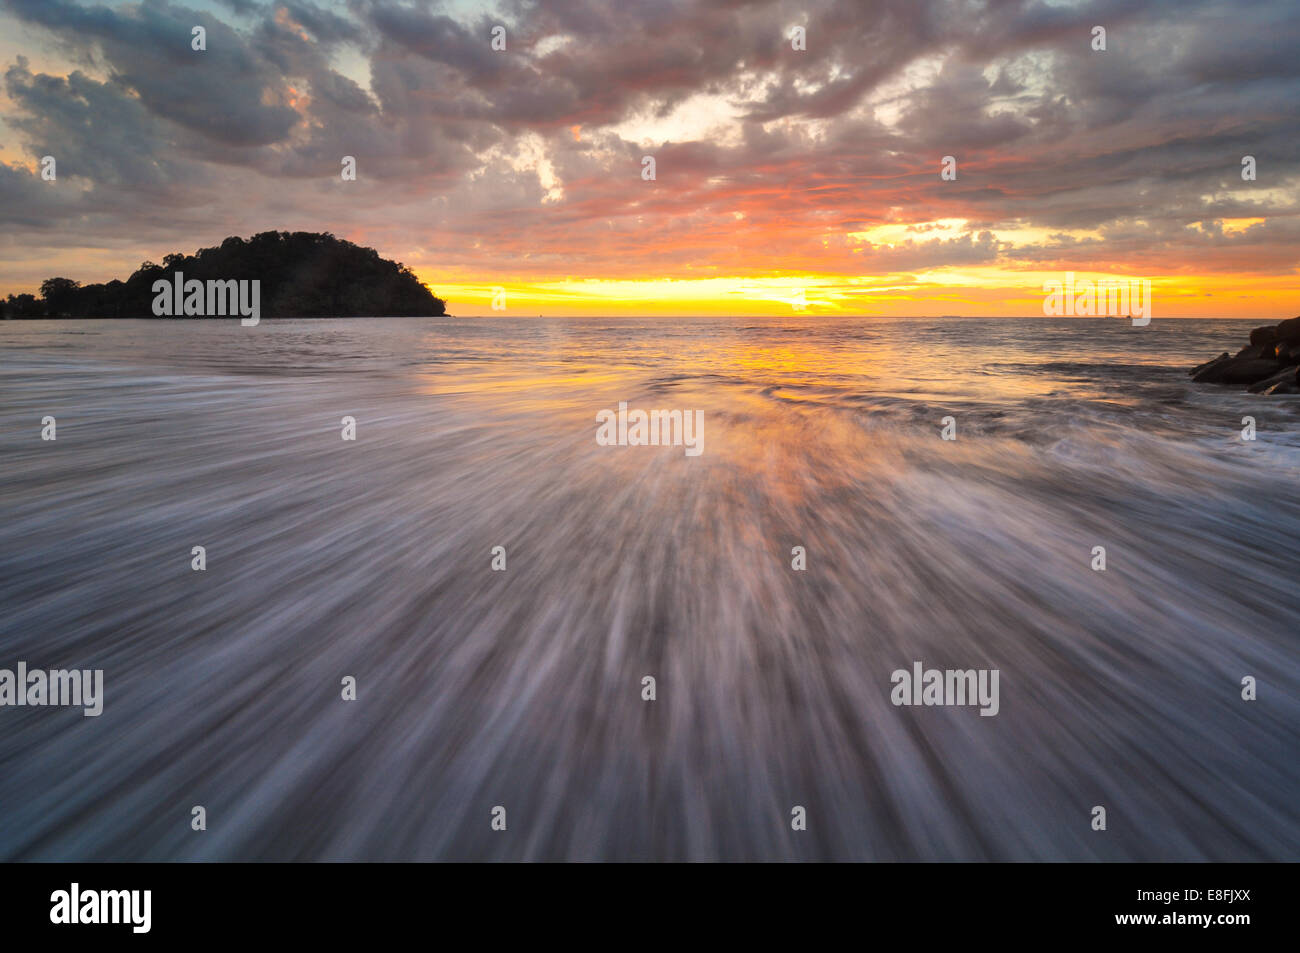 Indonesia, Padang, Taplau Beach, Wave and sunset - Stock Image